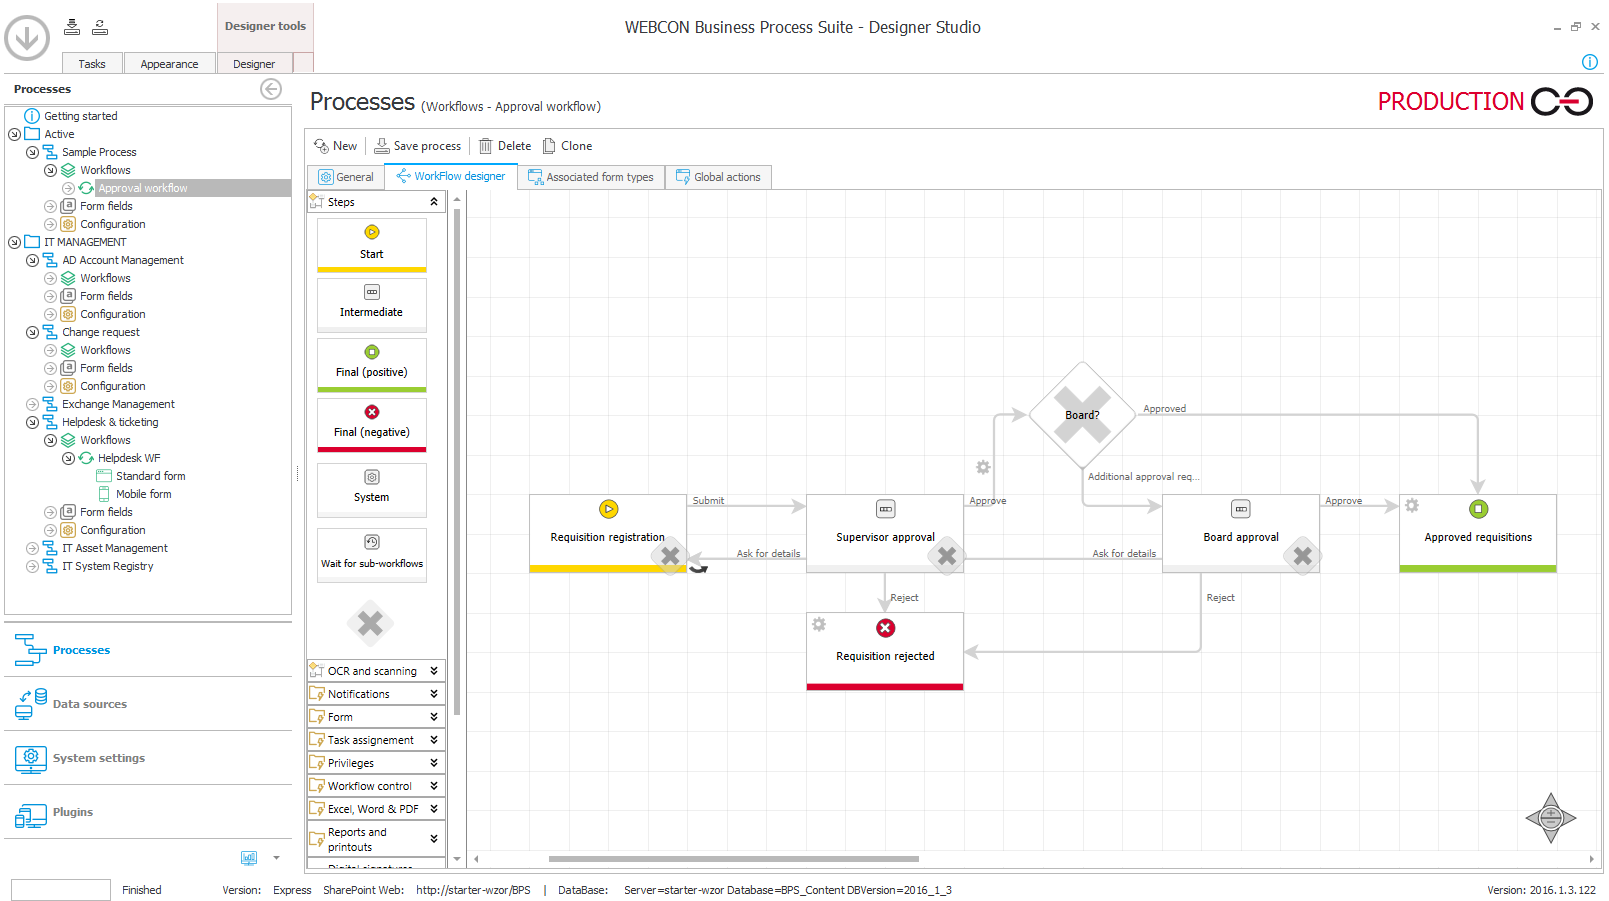 WEBCON BPS Demo - Graphical forms, workflows and business rules editor